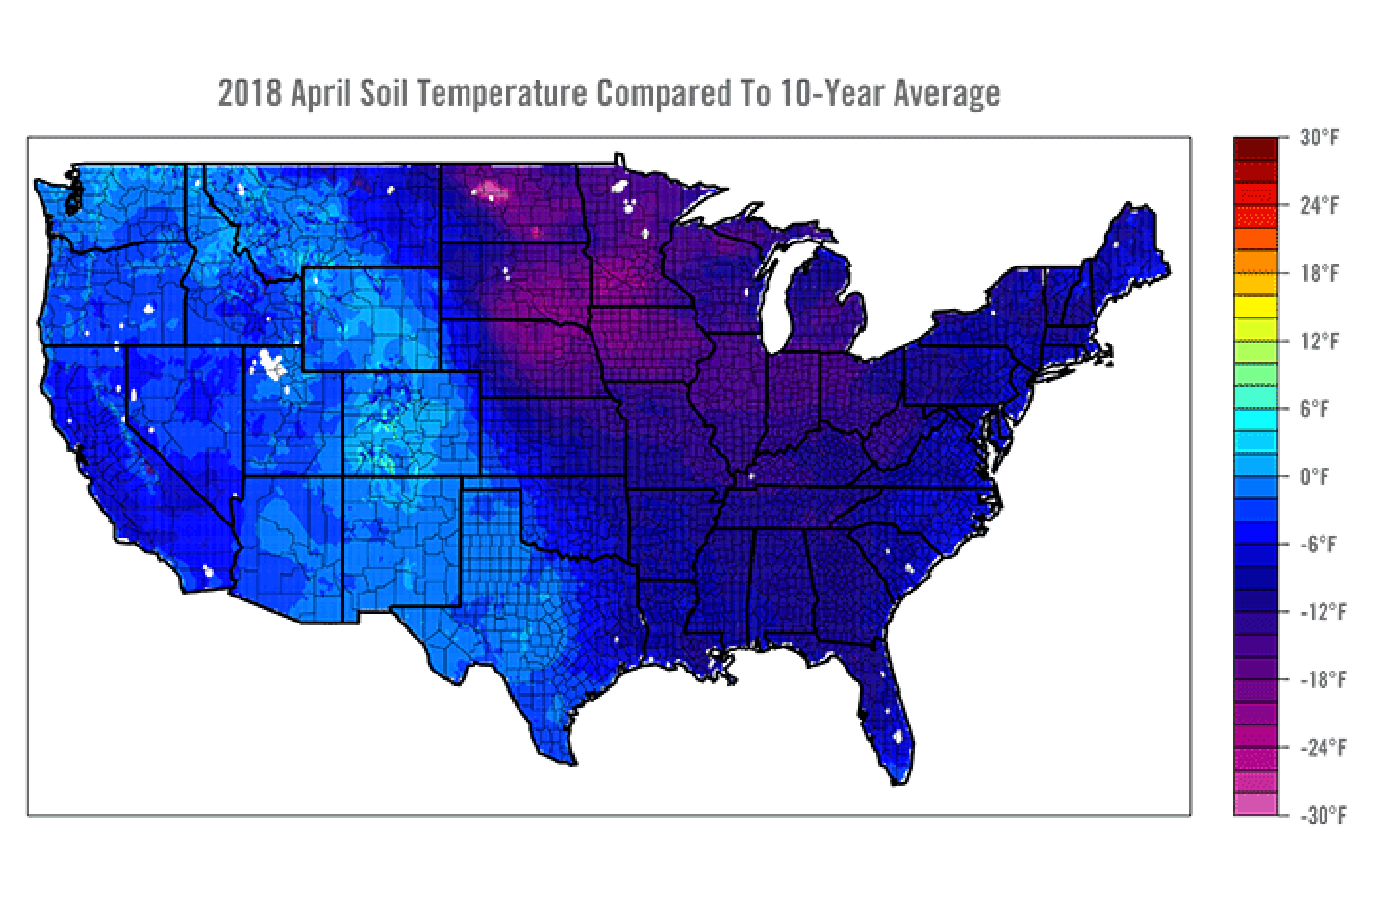 April 2018 soil temperature compared to 10 year average map